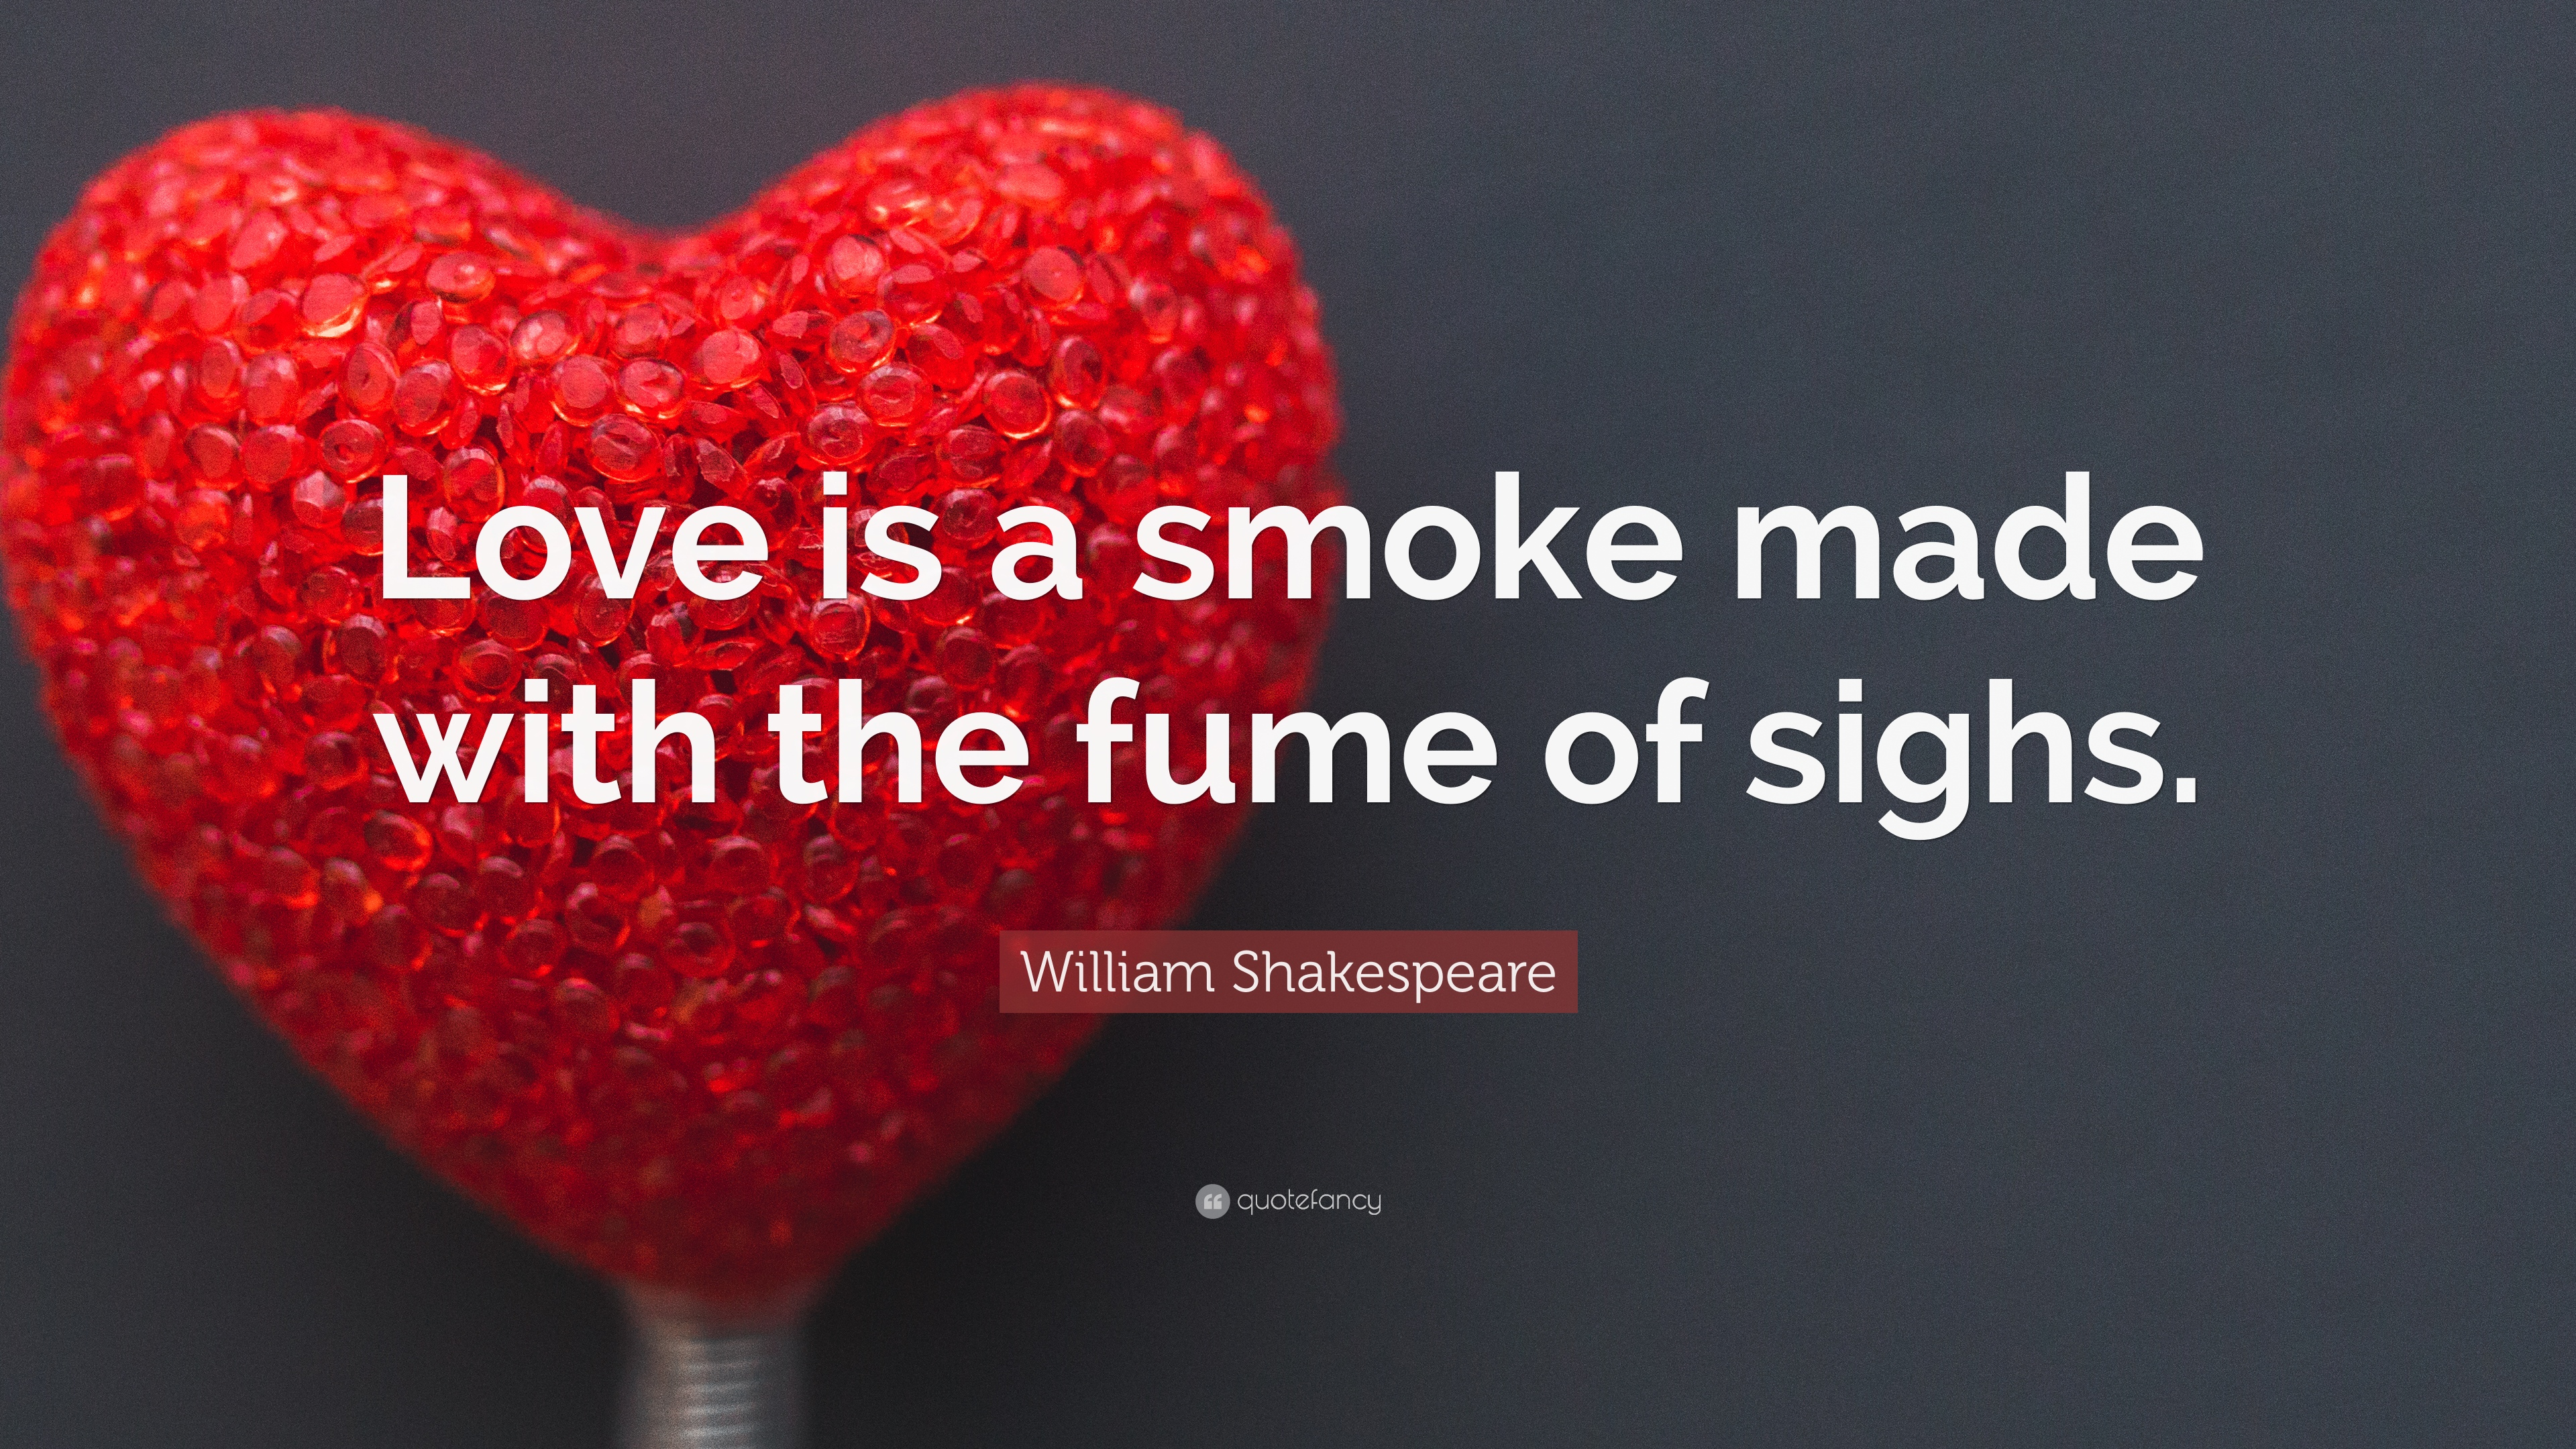 William Shakespeare Quote Love Is A Smoke Made With The Fume Of